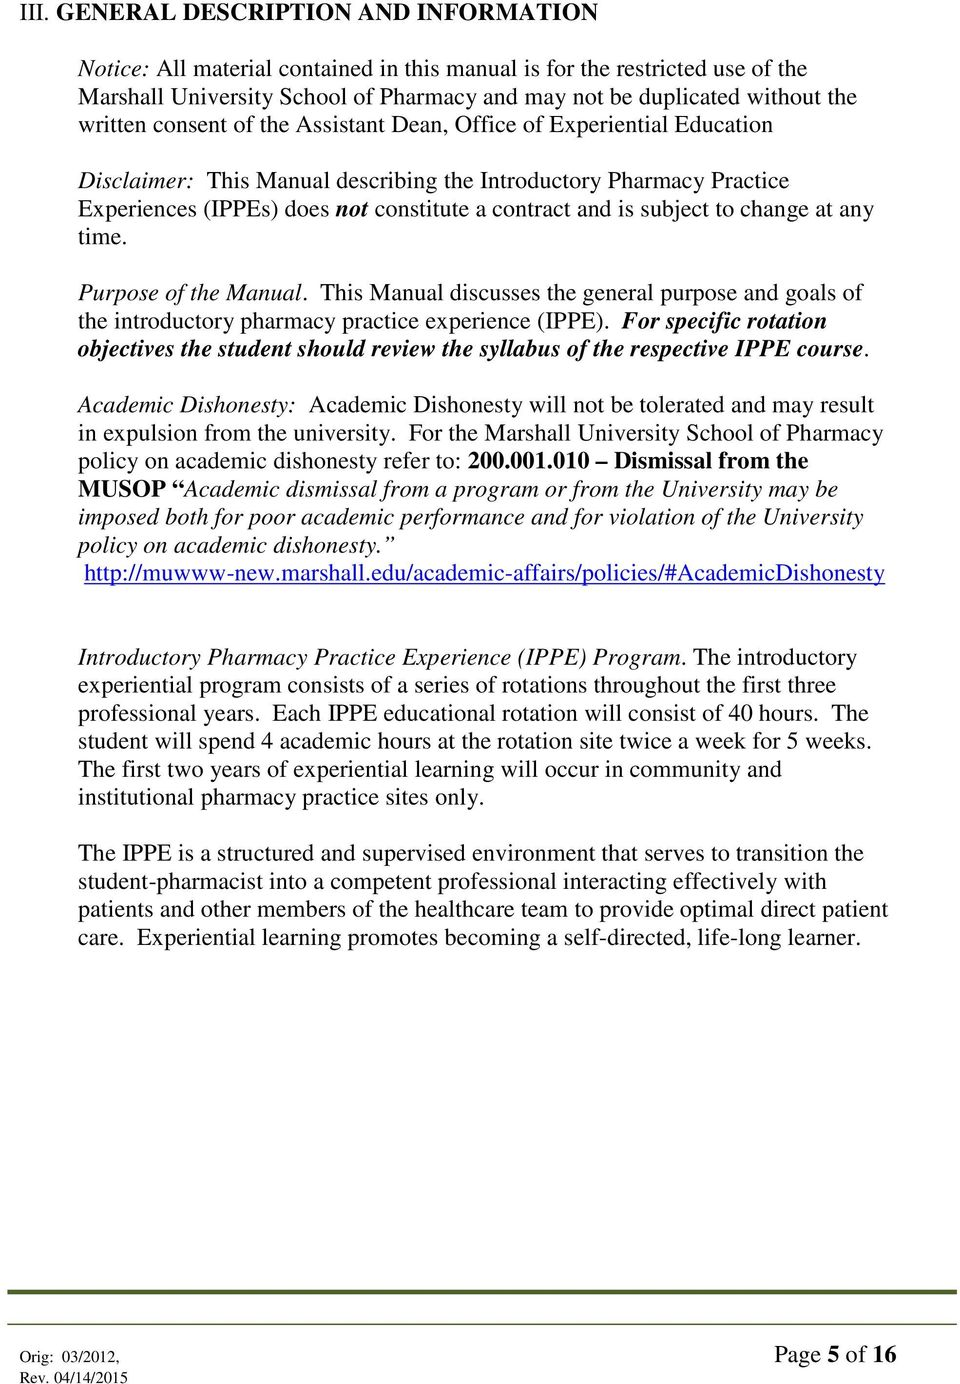 Introductory Pharmacy Practice Experience (IPPE) Student